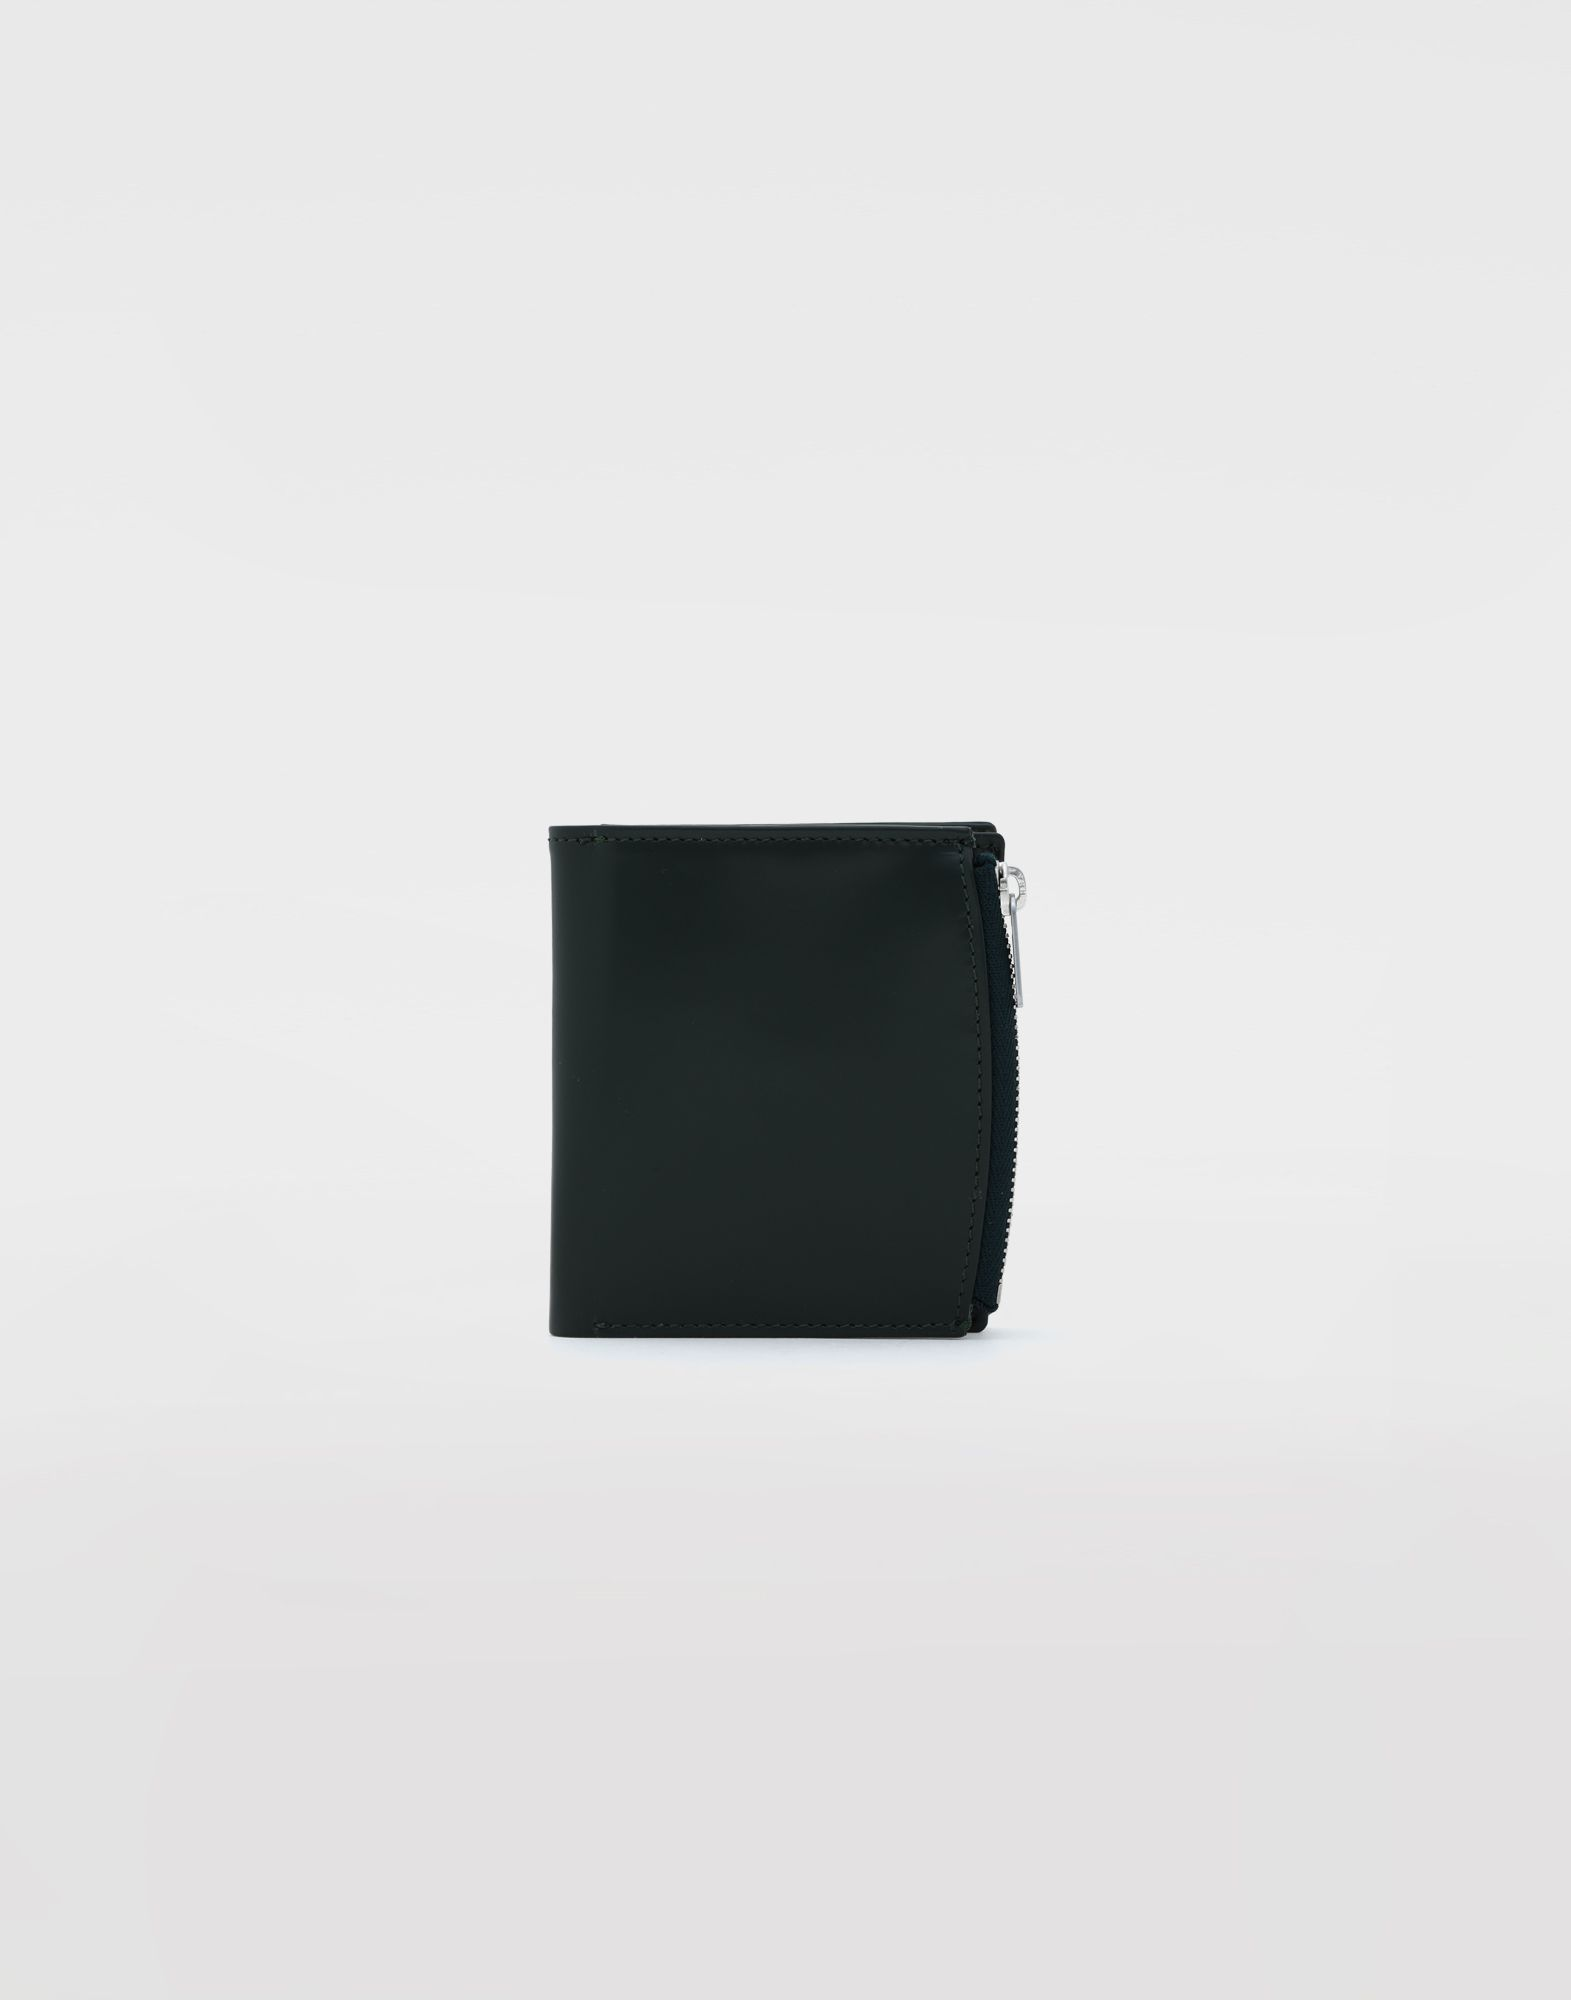 MAISON MARGIELA Folded calfskin zipped wallet Wallet Man f